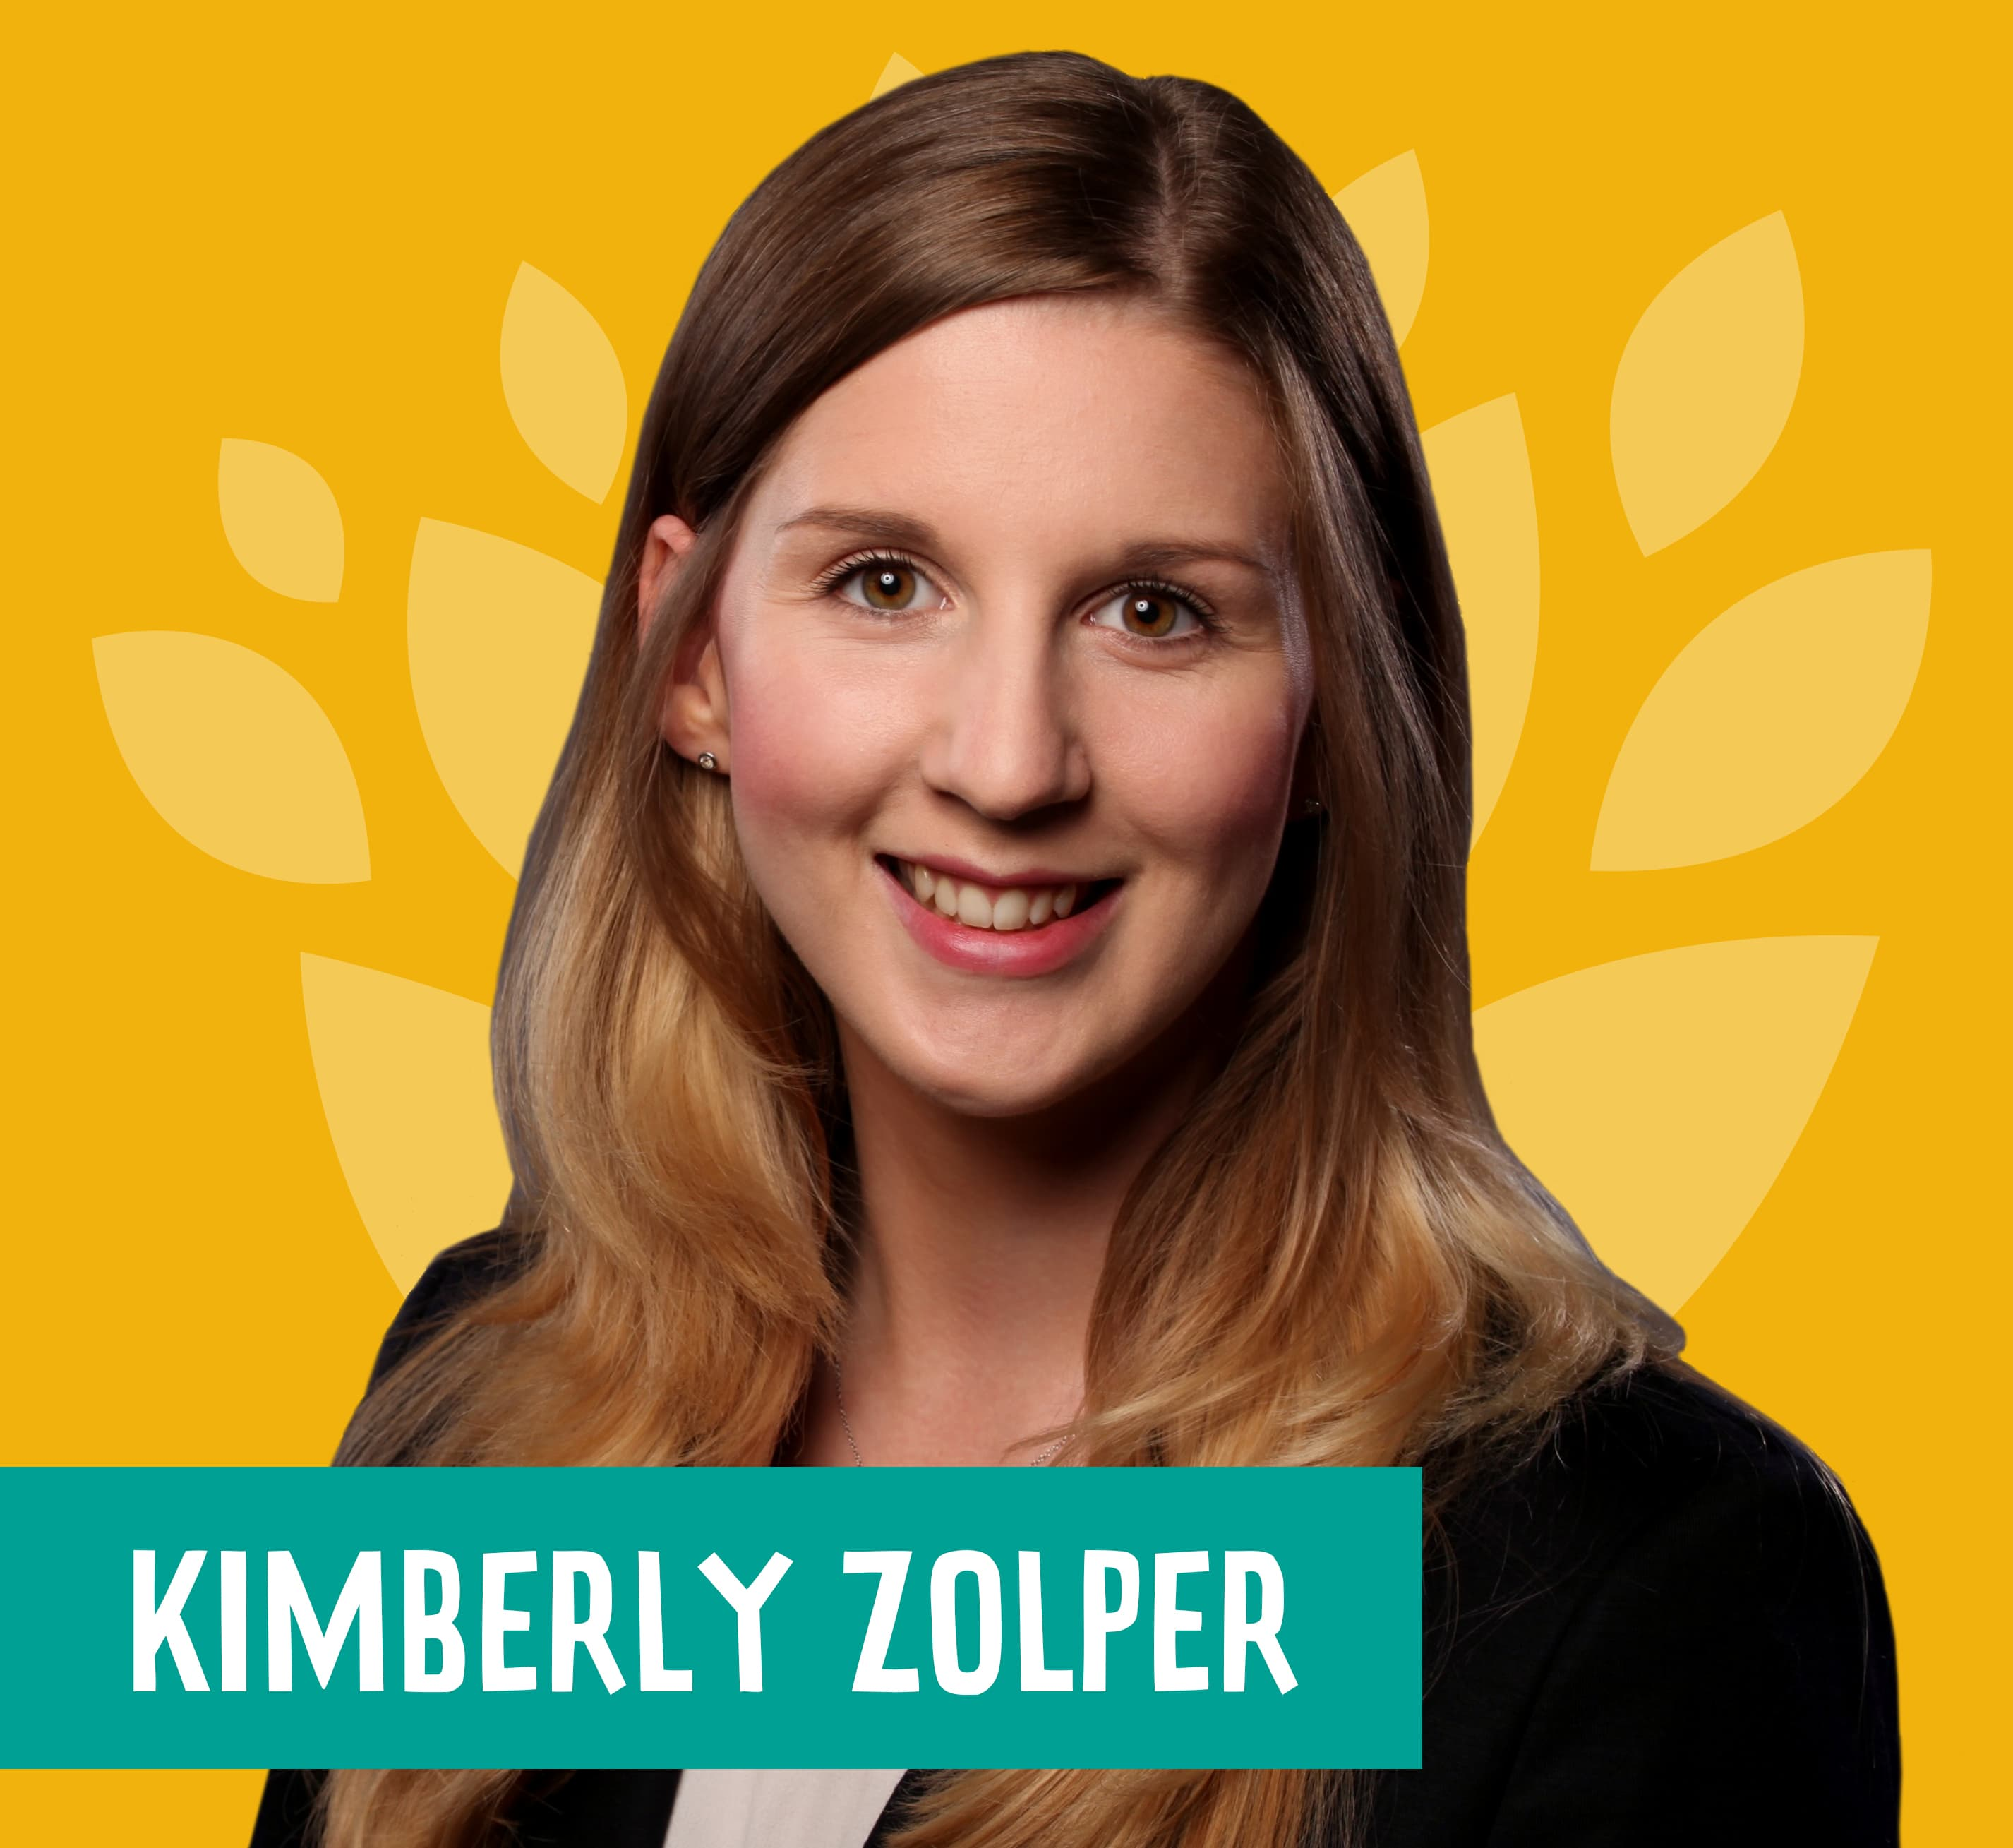 Kimberly Zolper